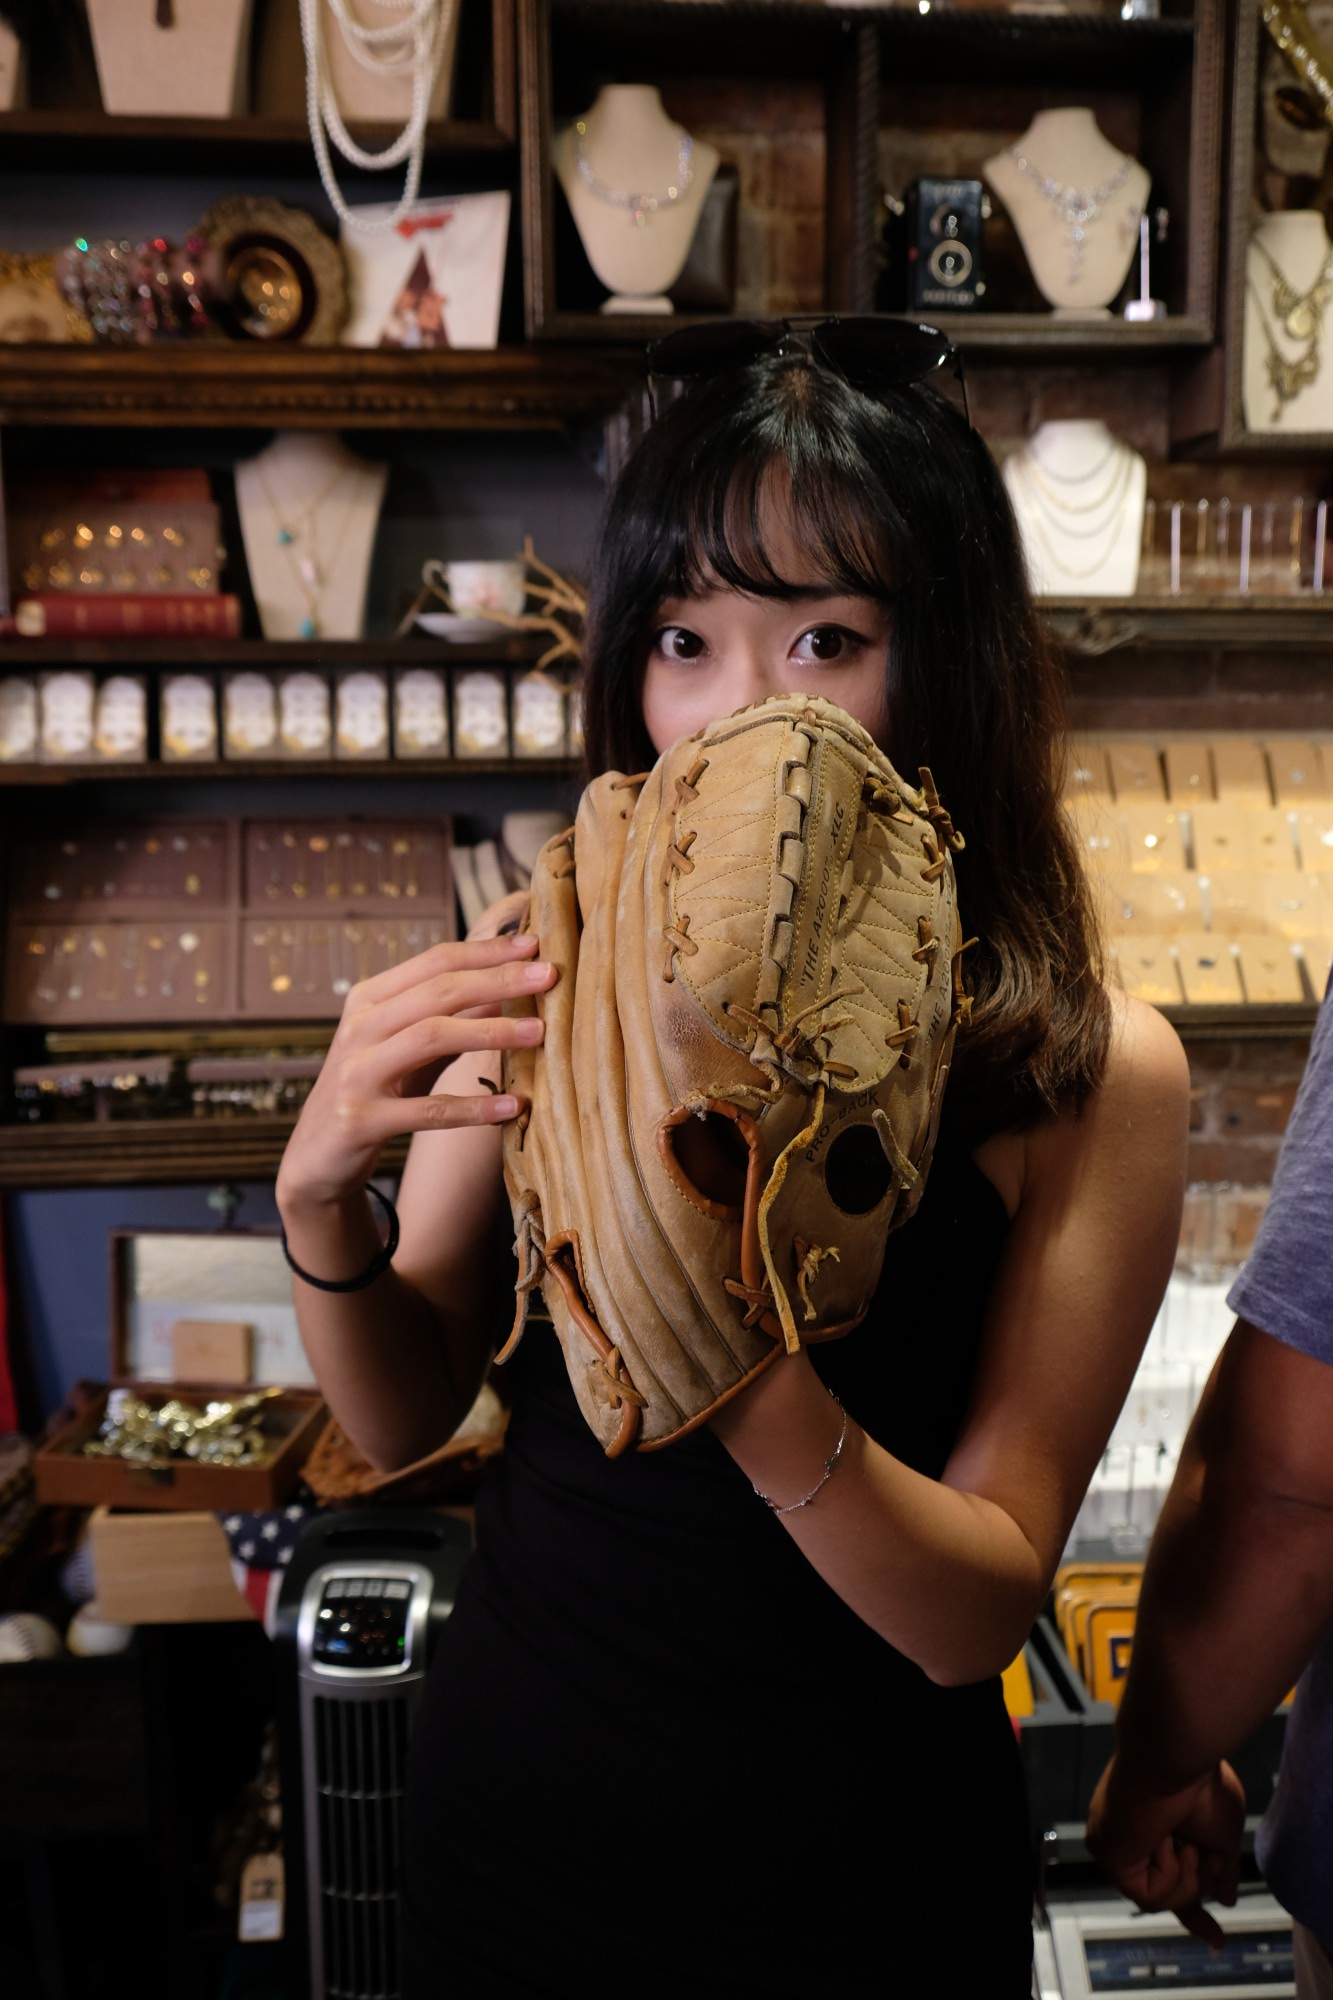 Chinese model with baseball glove